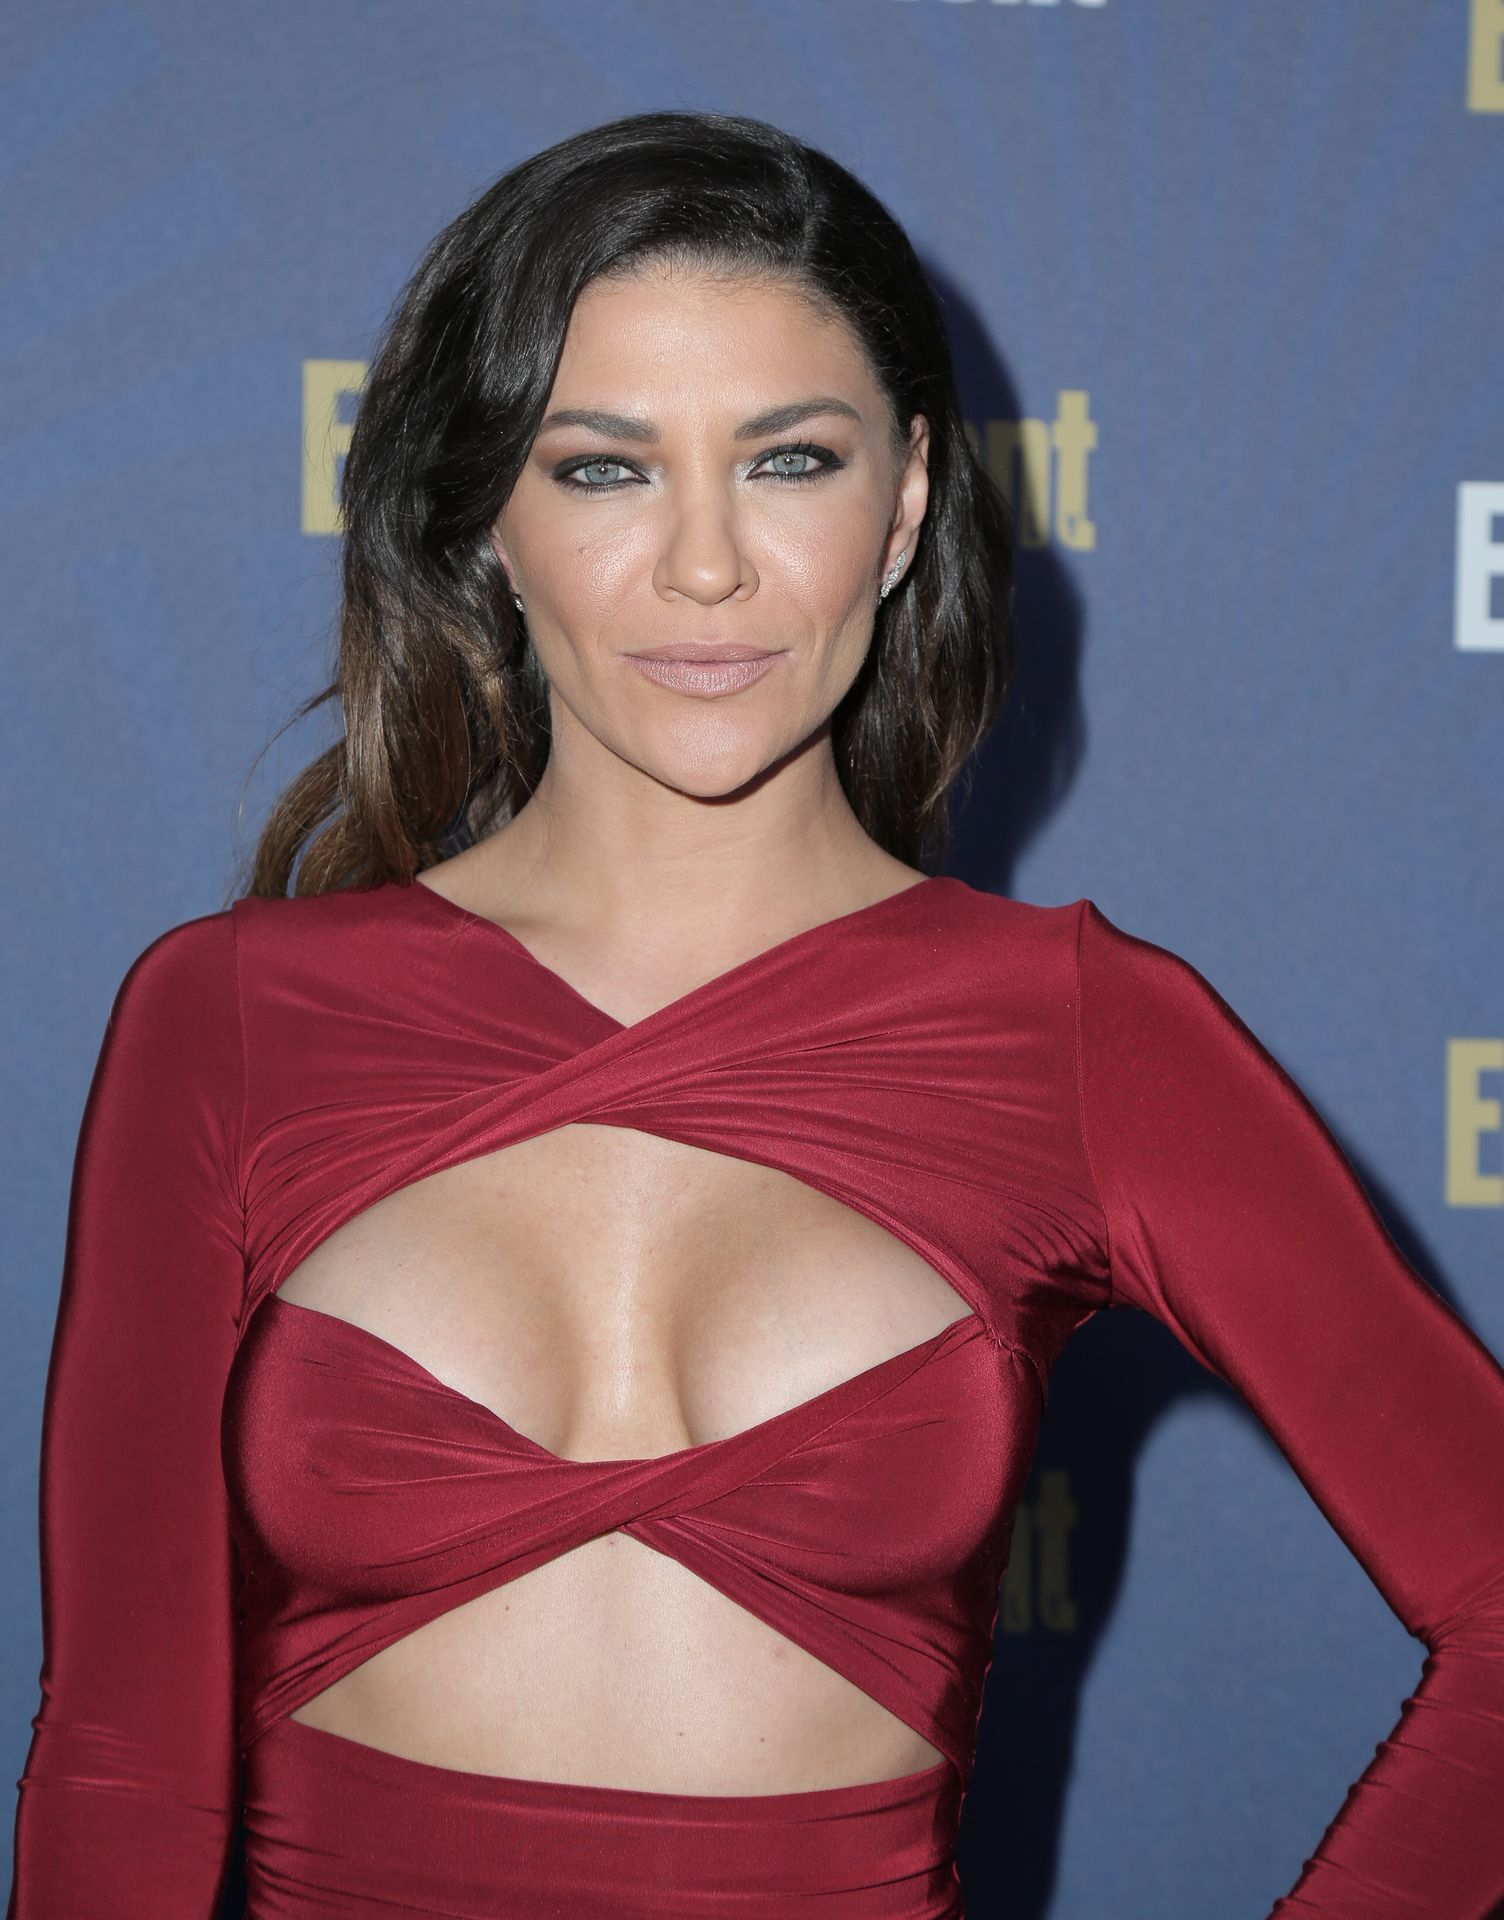 Jessica Szohr Shows Her Cleavage At The Entertainment Weekly Pre Sag Awards Celebration 0020